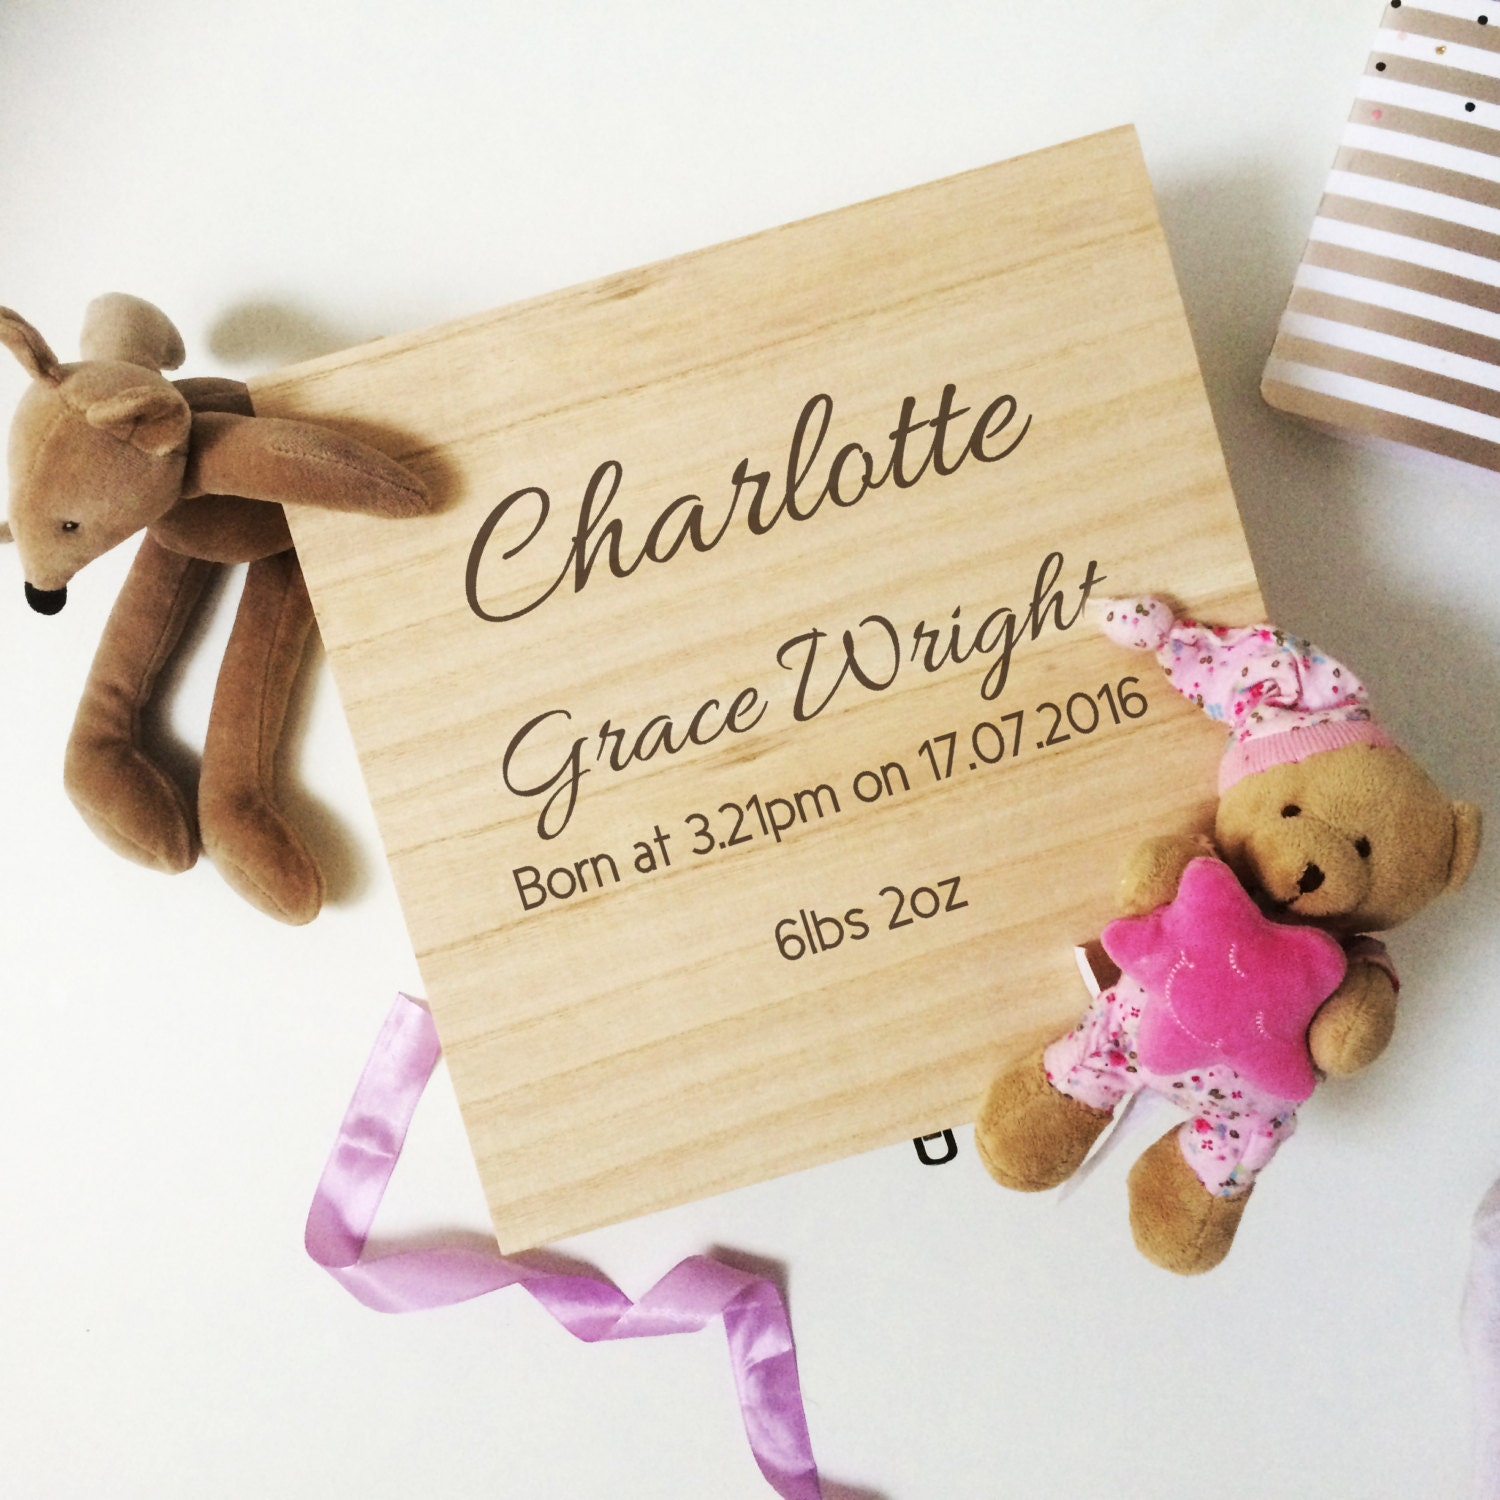 Baby Keepsake Box Baby memory box Box for Baby items personalised keepsake box christening gift baby gift